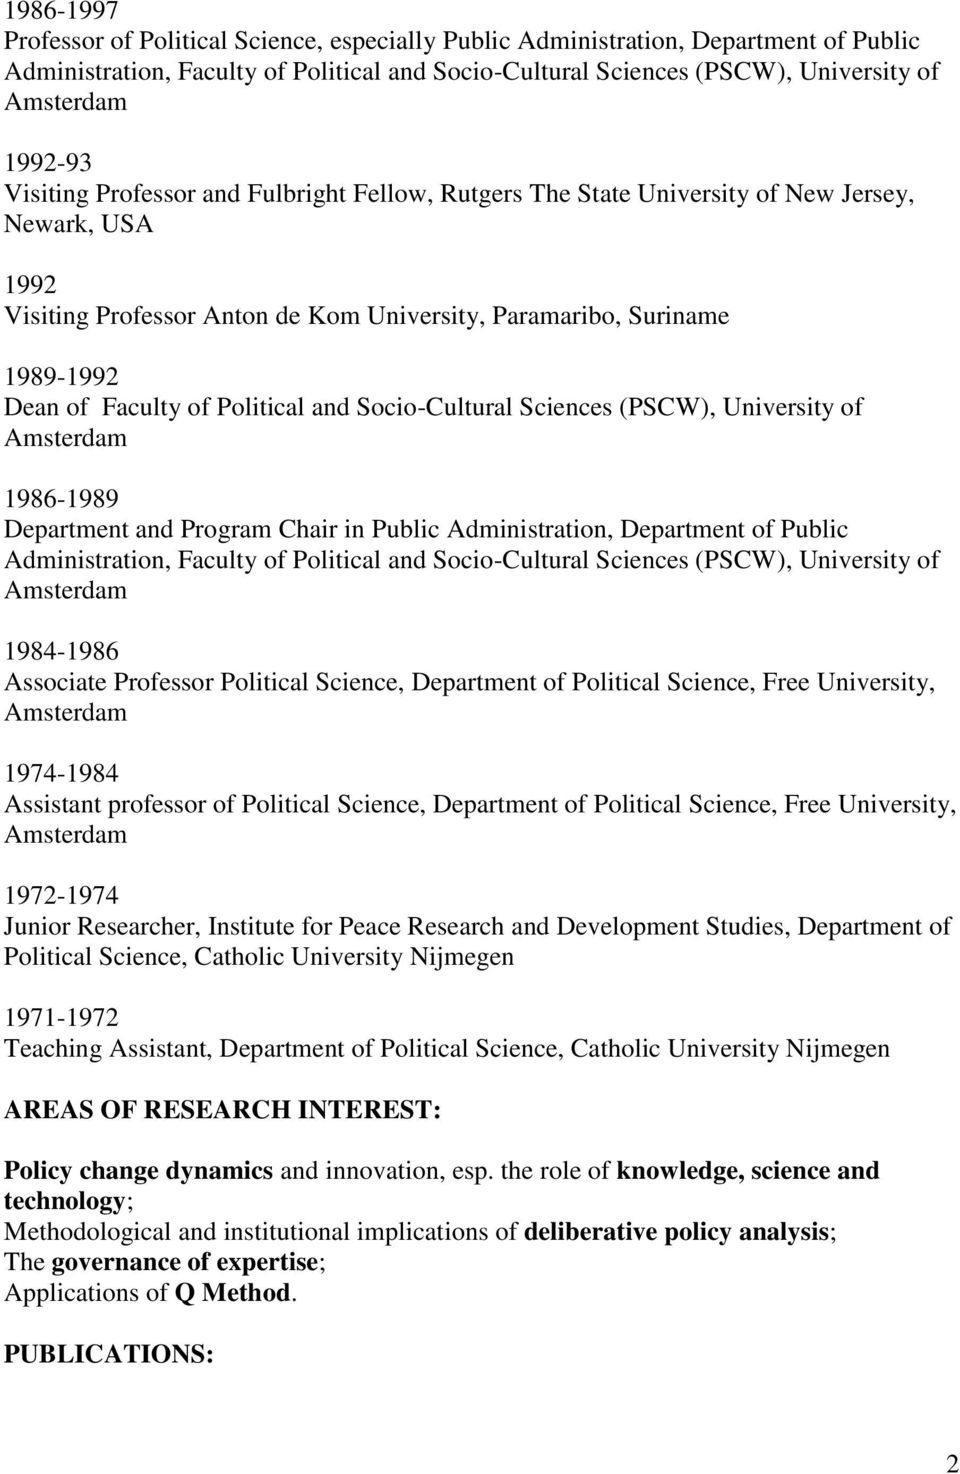 Faculty of Political and Socio-Cultural Sciences (PSCW), University of Amsterdam 1986-1989 Department and Program Chair in Public Administration, Department of Public Administration, Faculty of